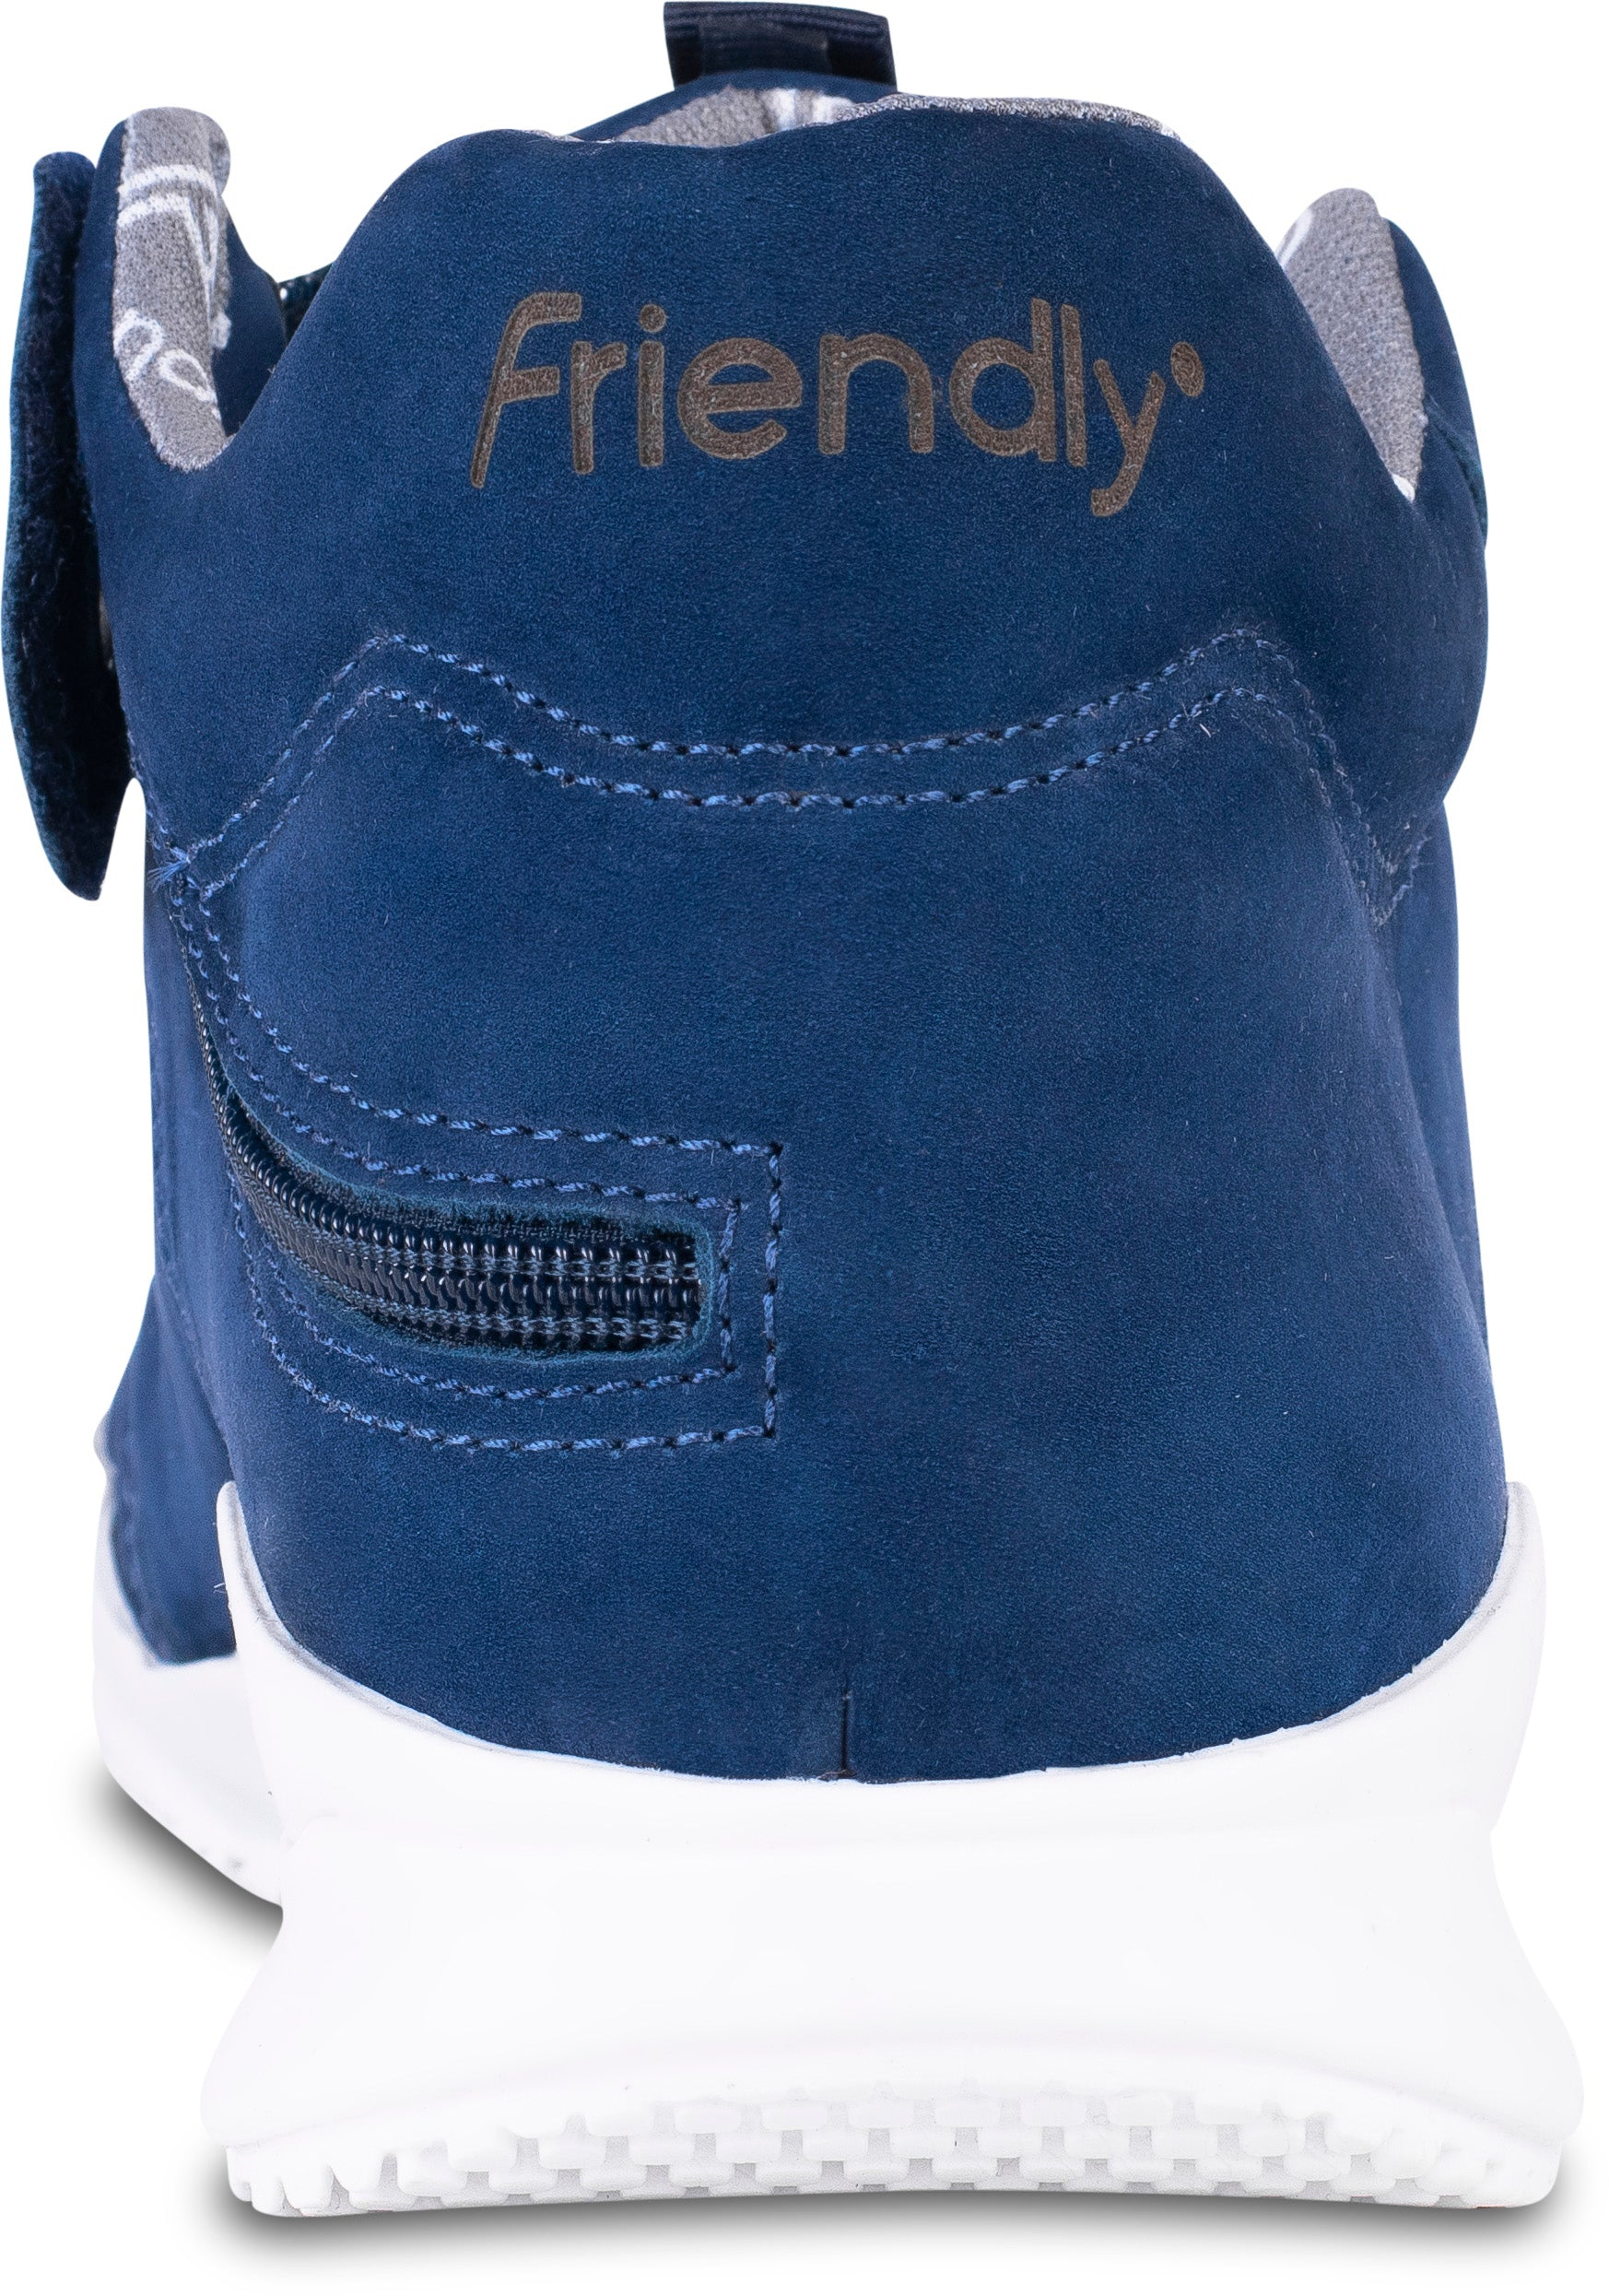 Men's Medimoto Blue Suede